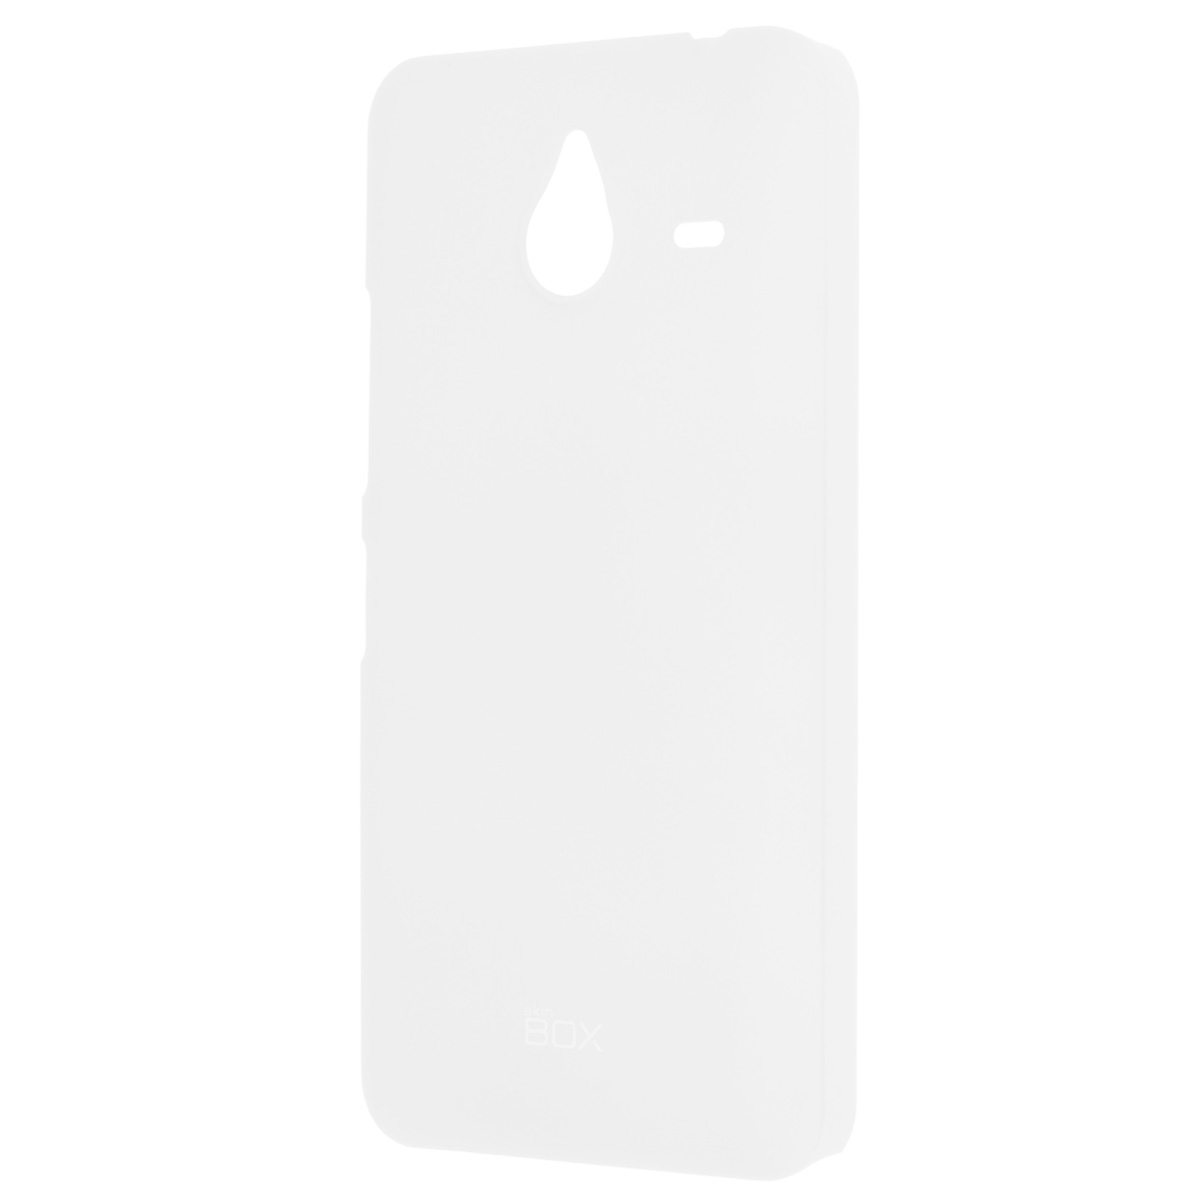 Skinbox Shield 4People чехол для Microsoft Lumia 640XL, White чехлы для телефонов skinbox lg max l bello 2 skinbox shield 4people